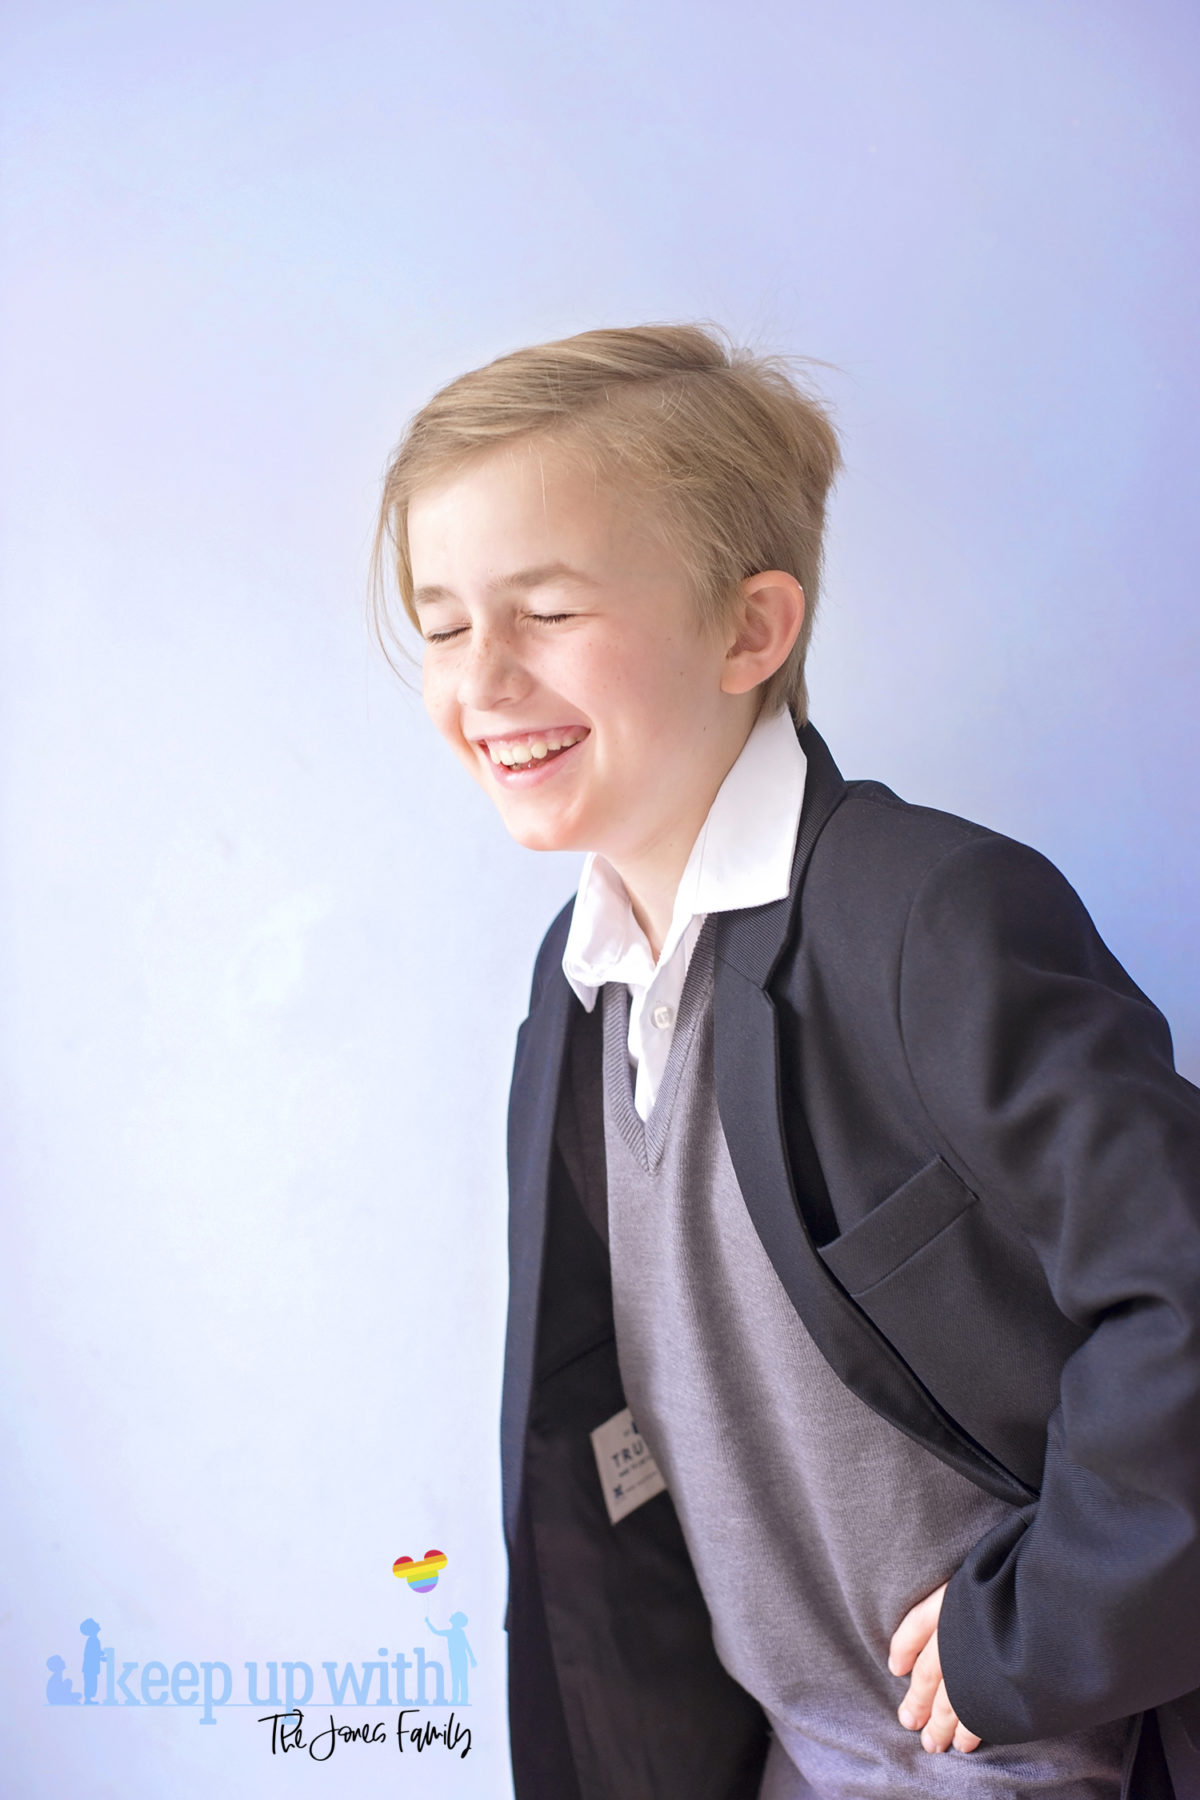 Image shows a boy wearing Trutex School Uniform. Black blazer, grey v-neck pullover and white shirt. Image by Sara-Jayne for Keep Up With The Jones Family